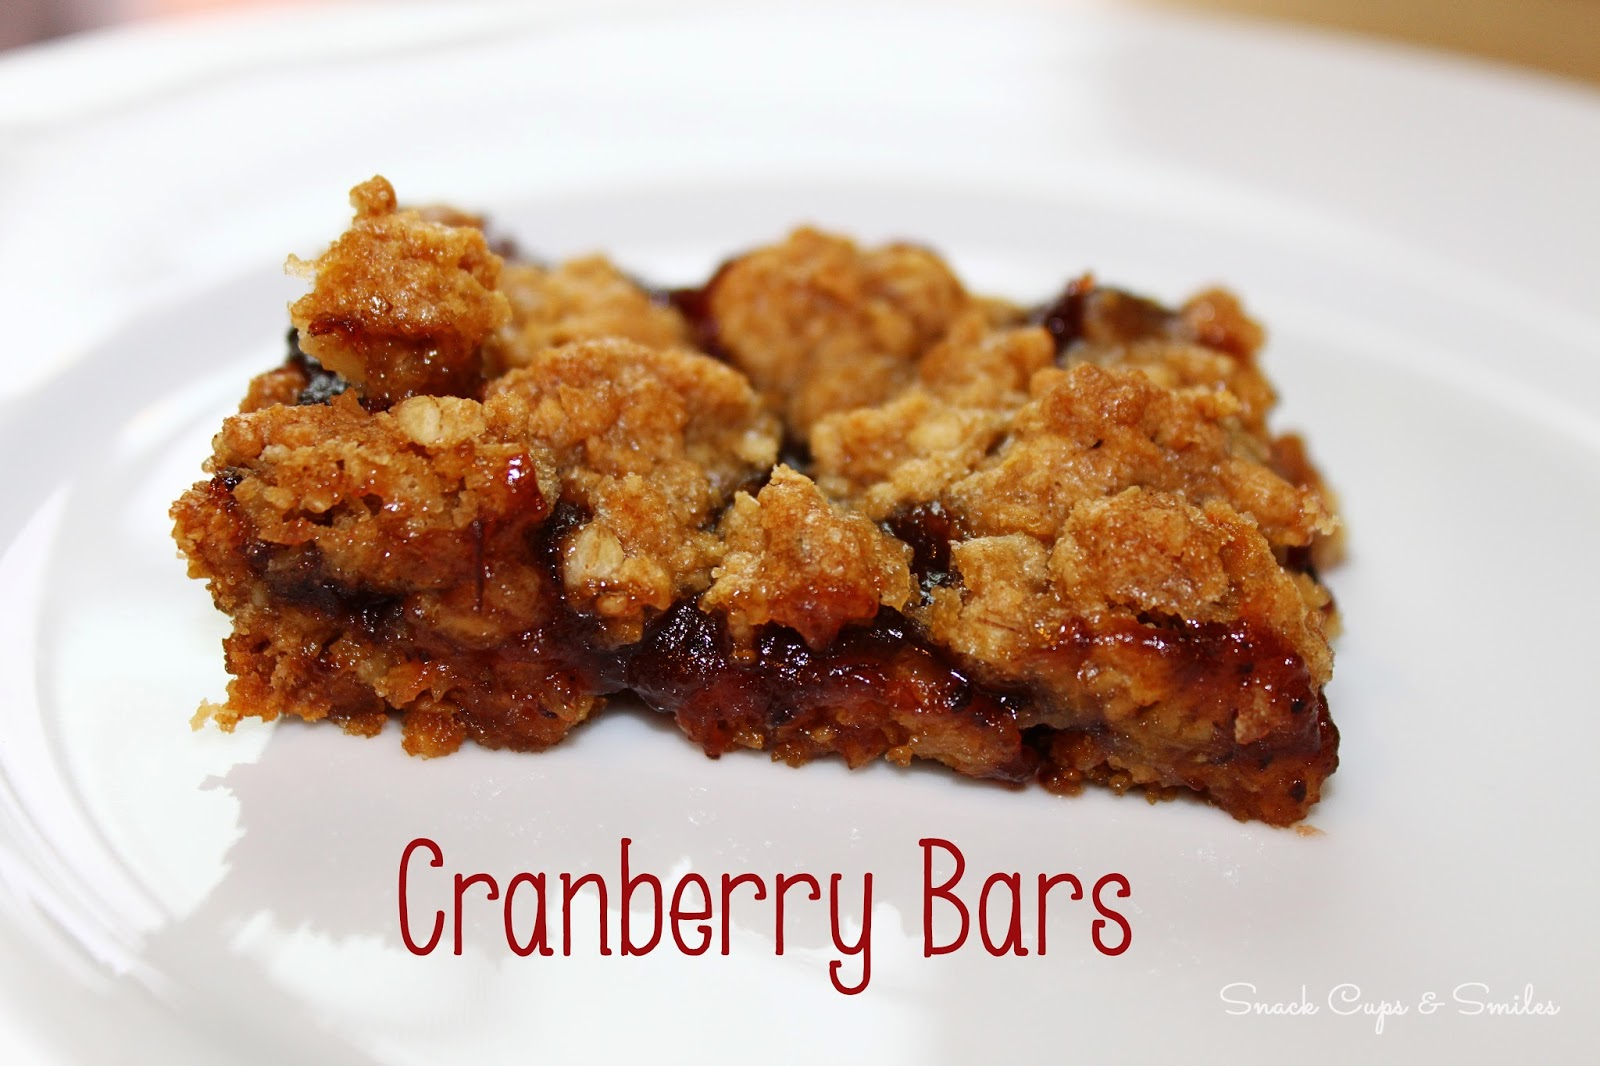 Cranberry Bars #desserts #recipes #easyrecipes #cranberrysauce